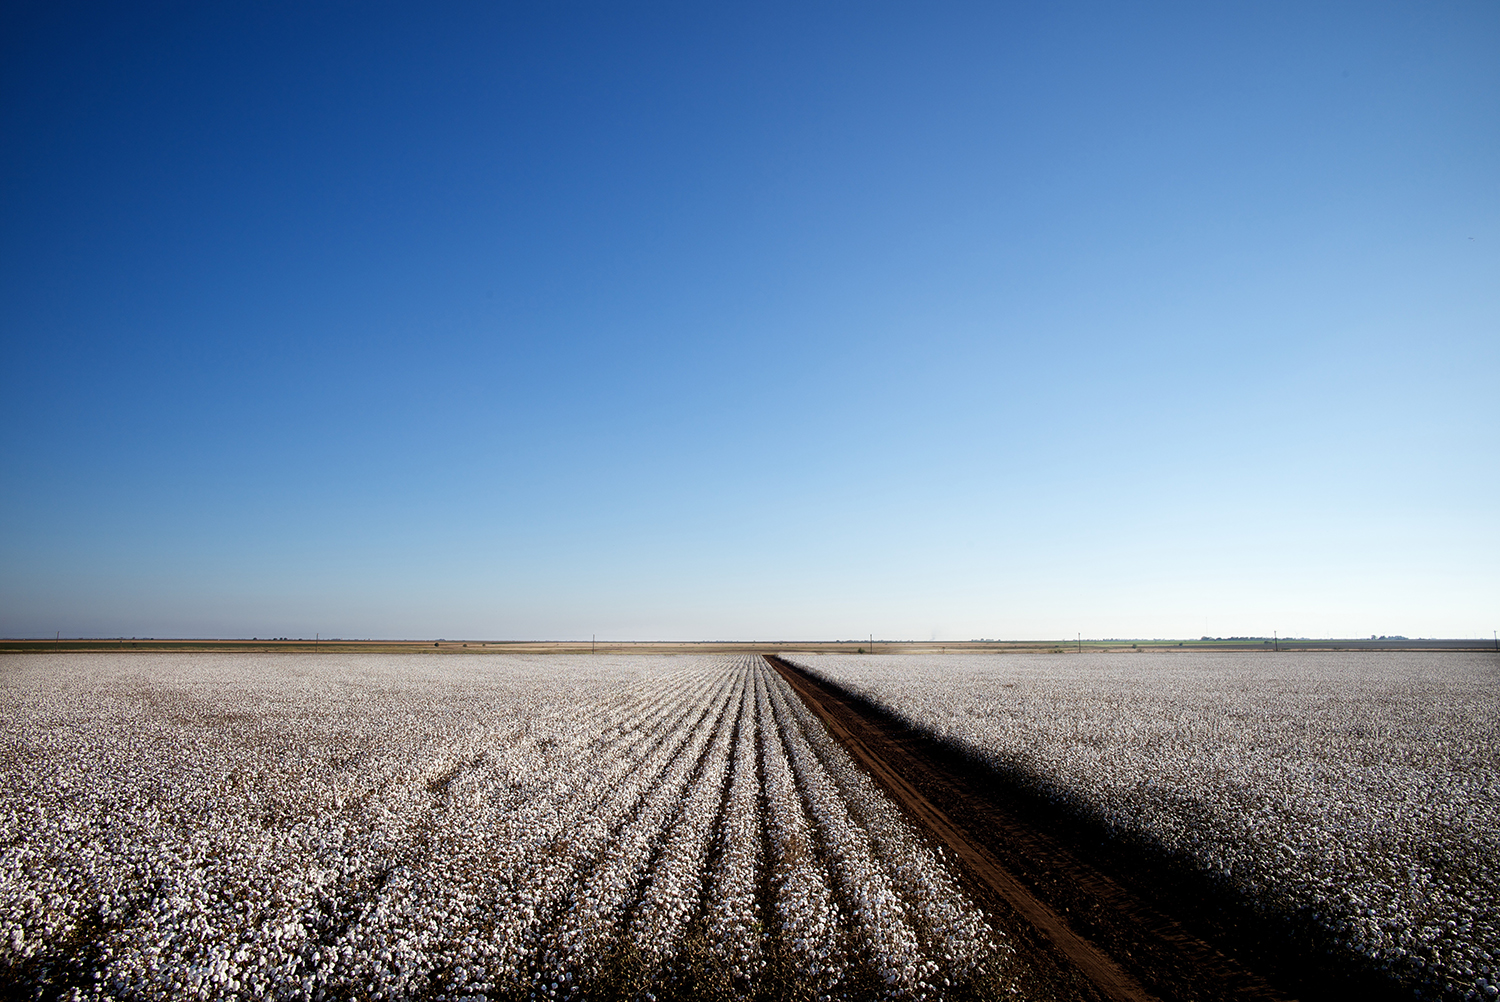 Cotton_USA_001.jpg